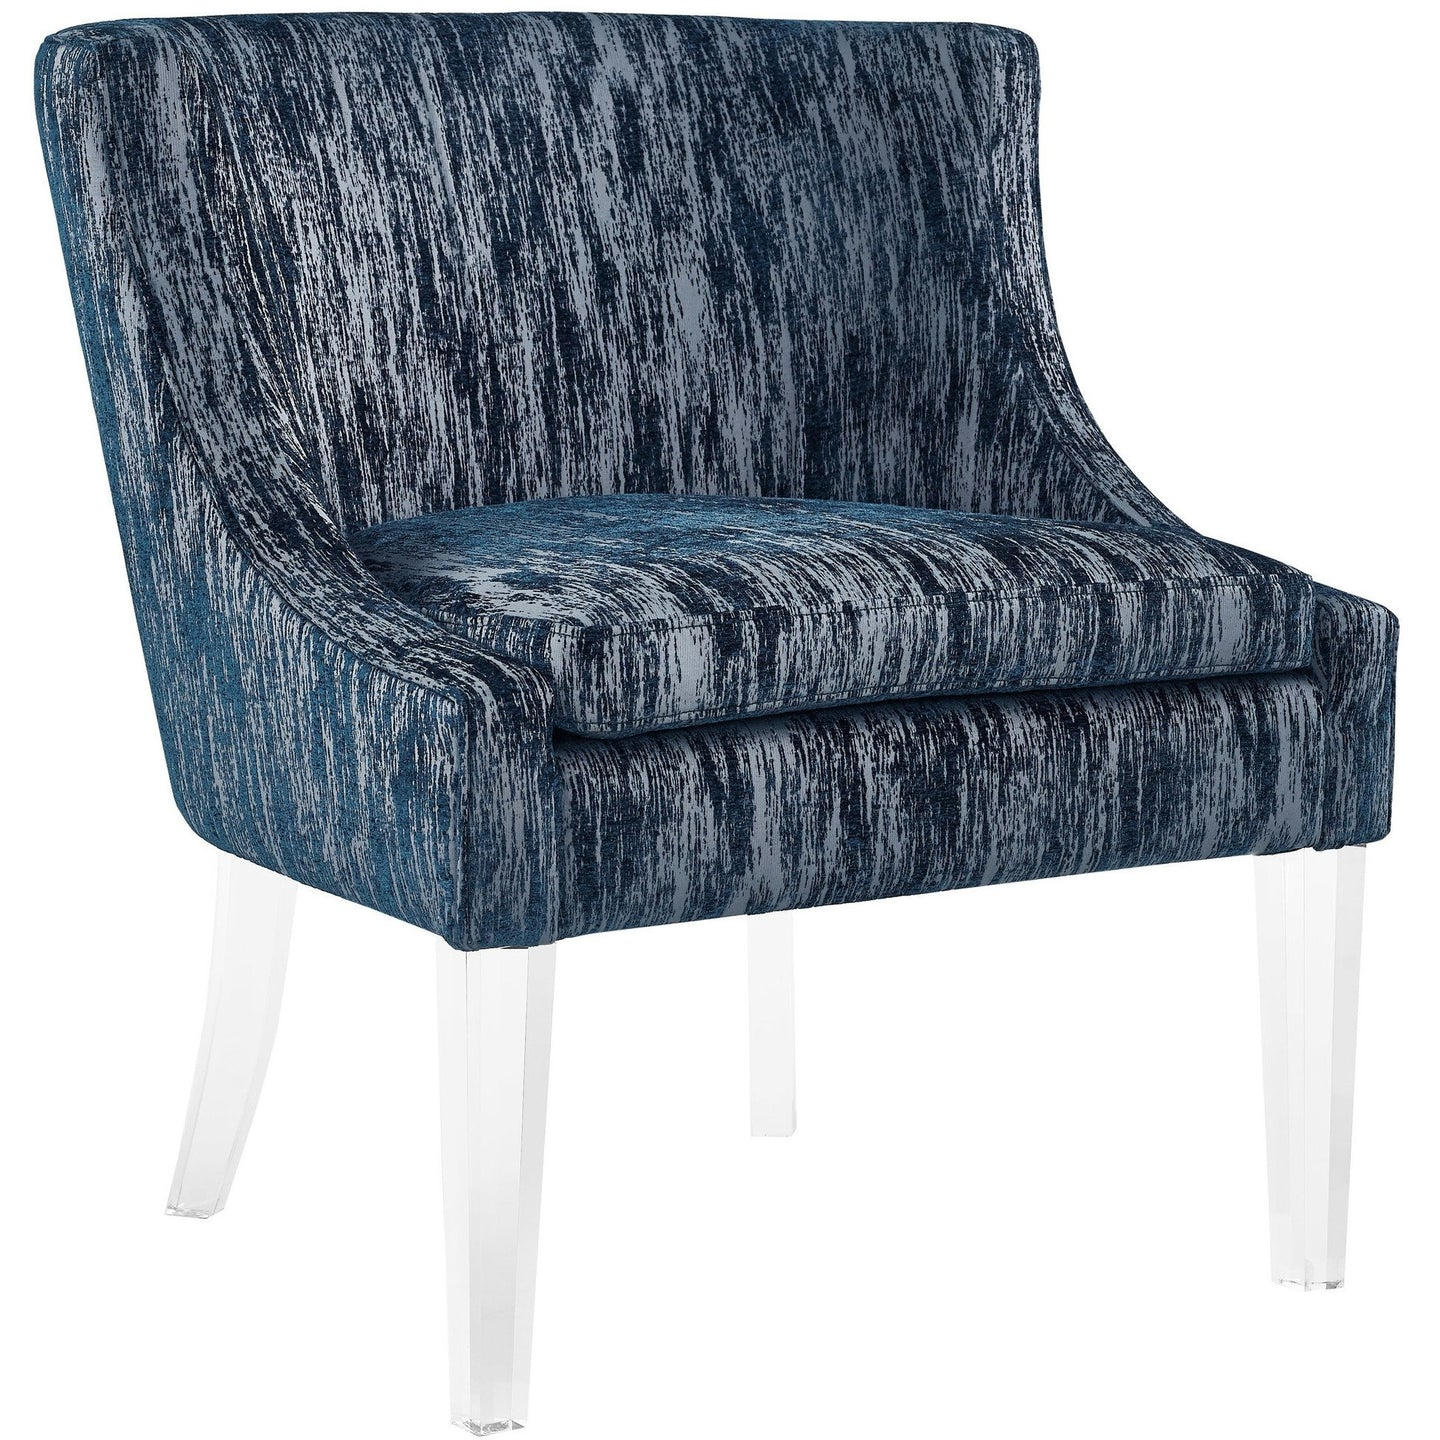 TOV Furniture Modern Myra Blue Textured Velvet Chair TOV-A113-Minimal & Modern